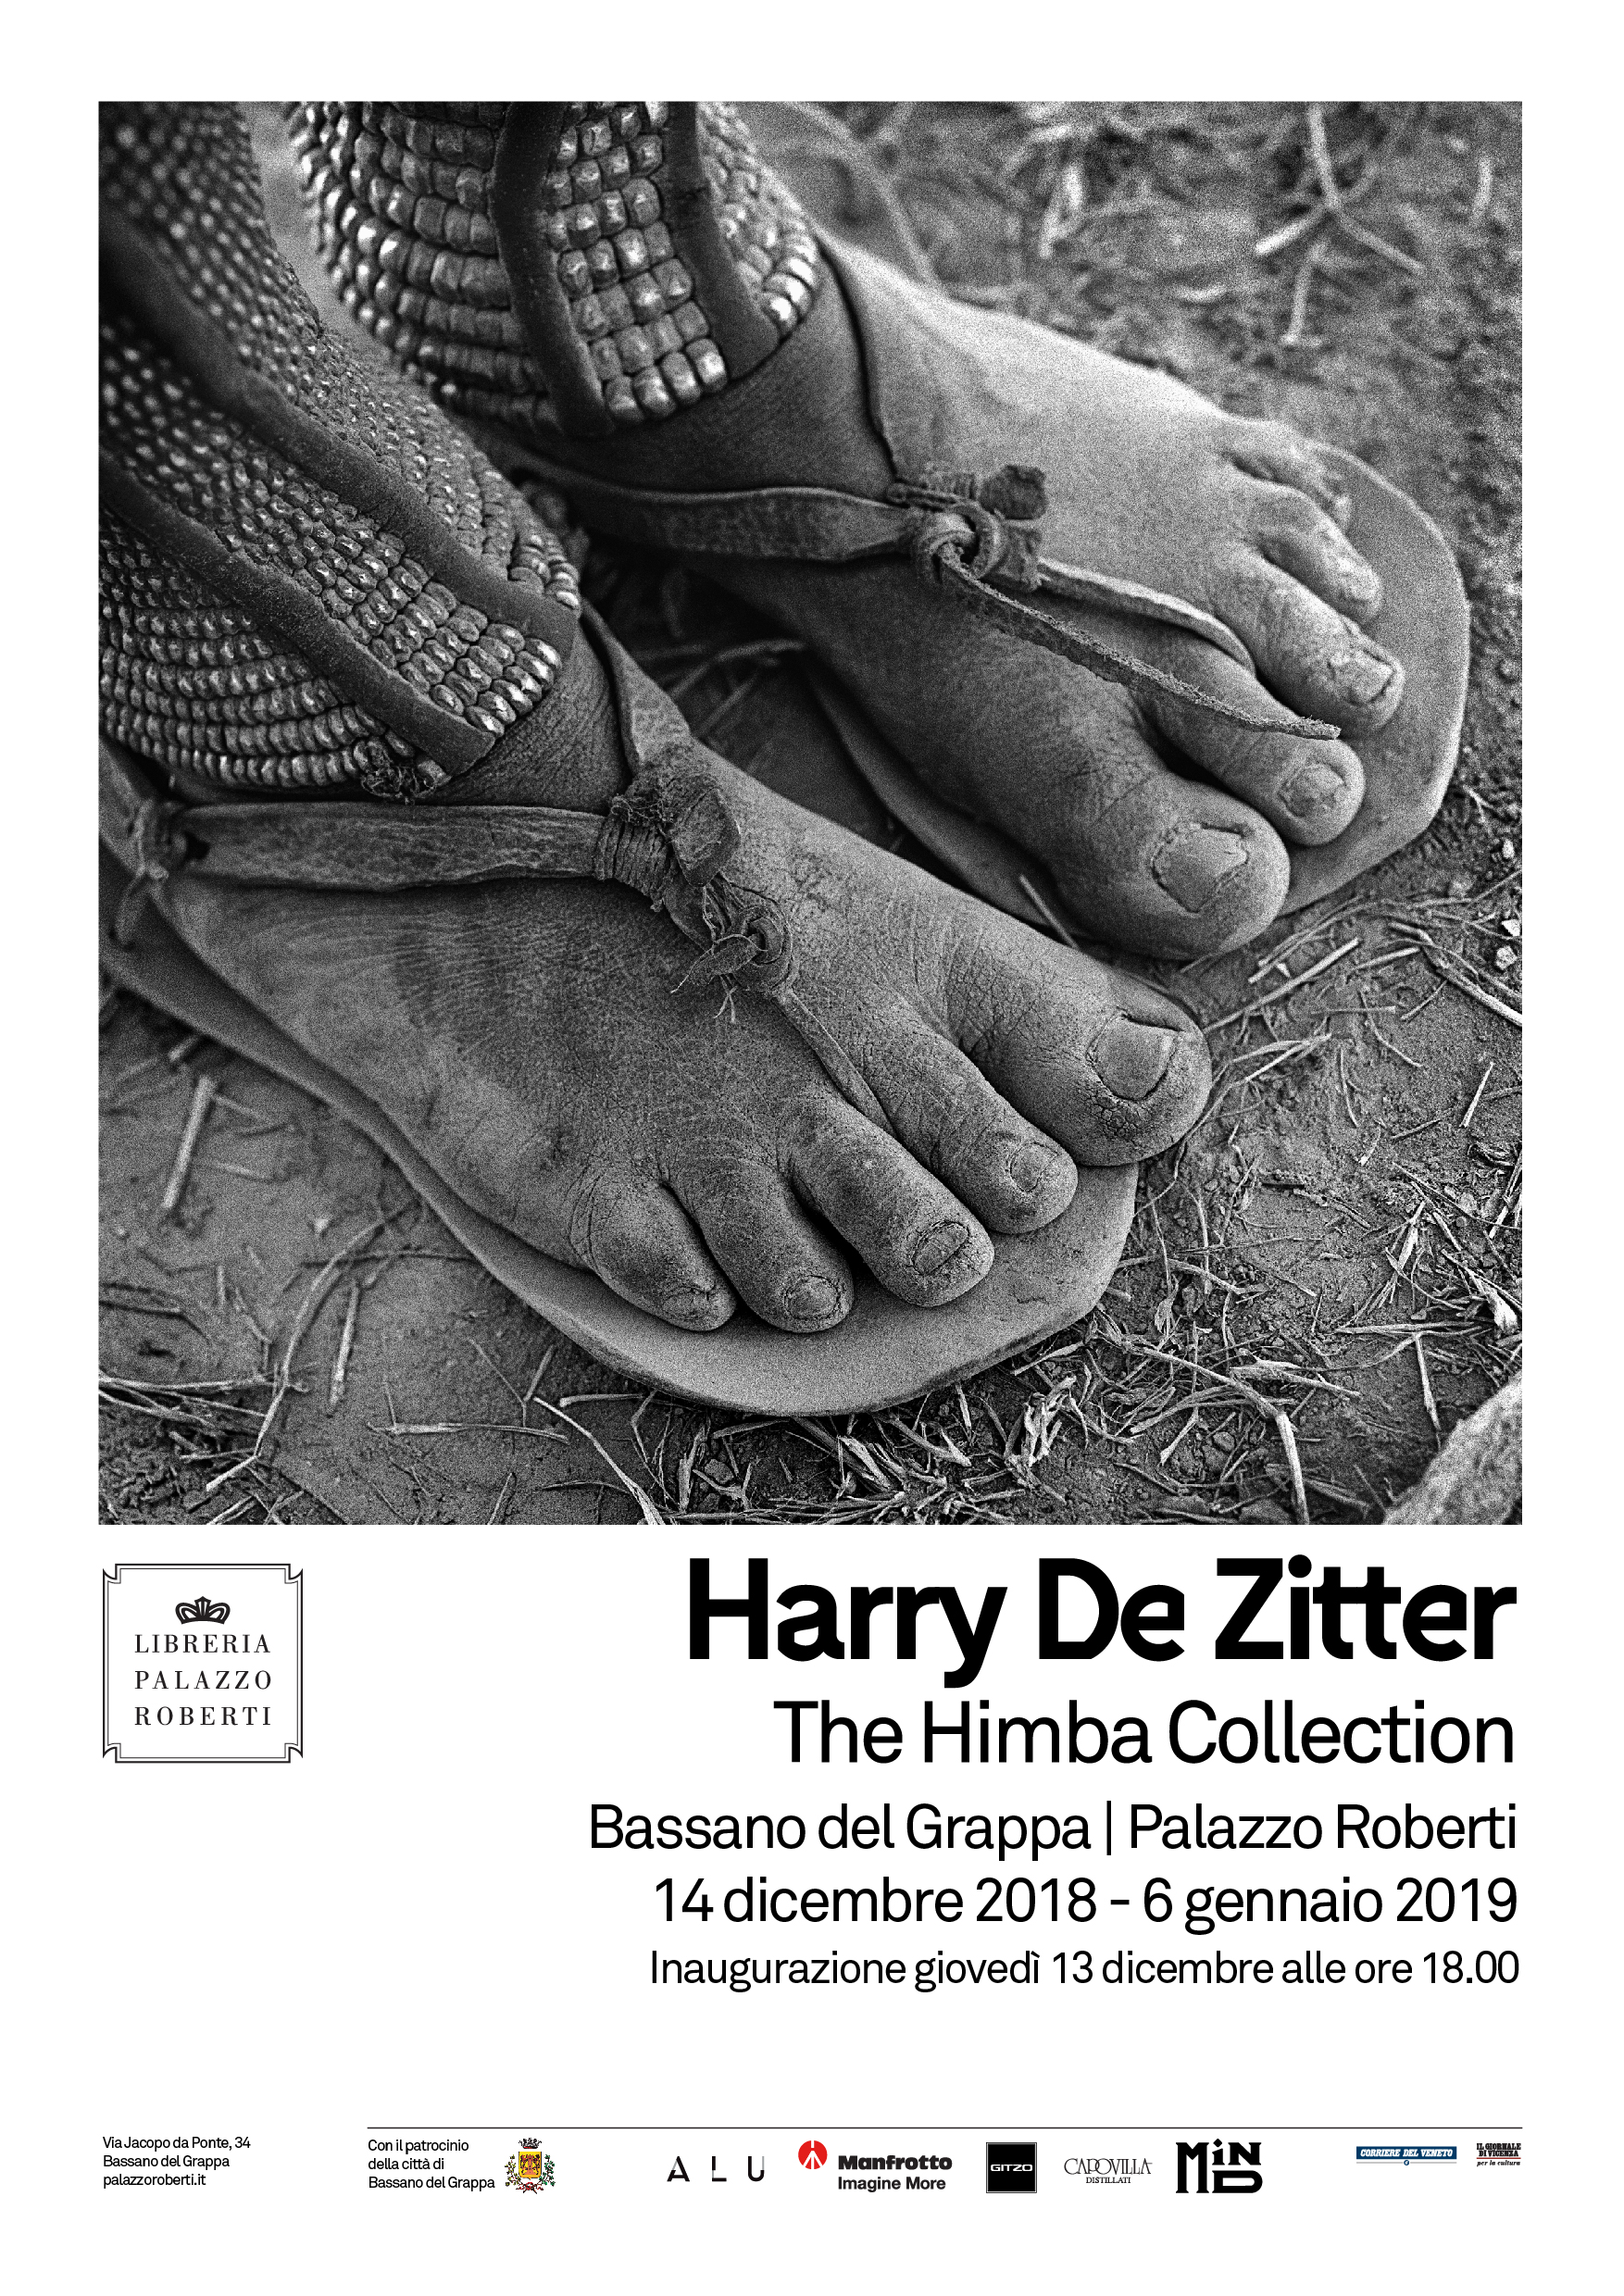 Harry De Zitter. The Himba Collection